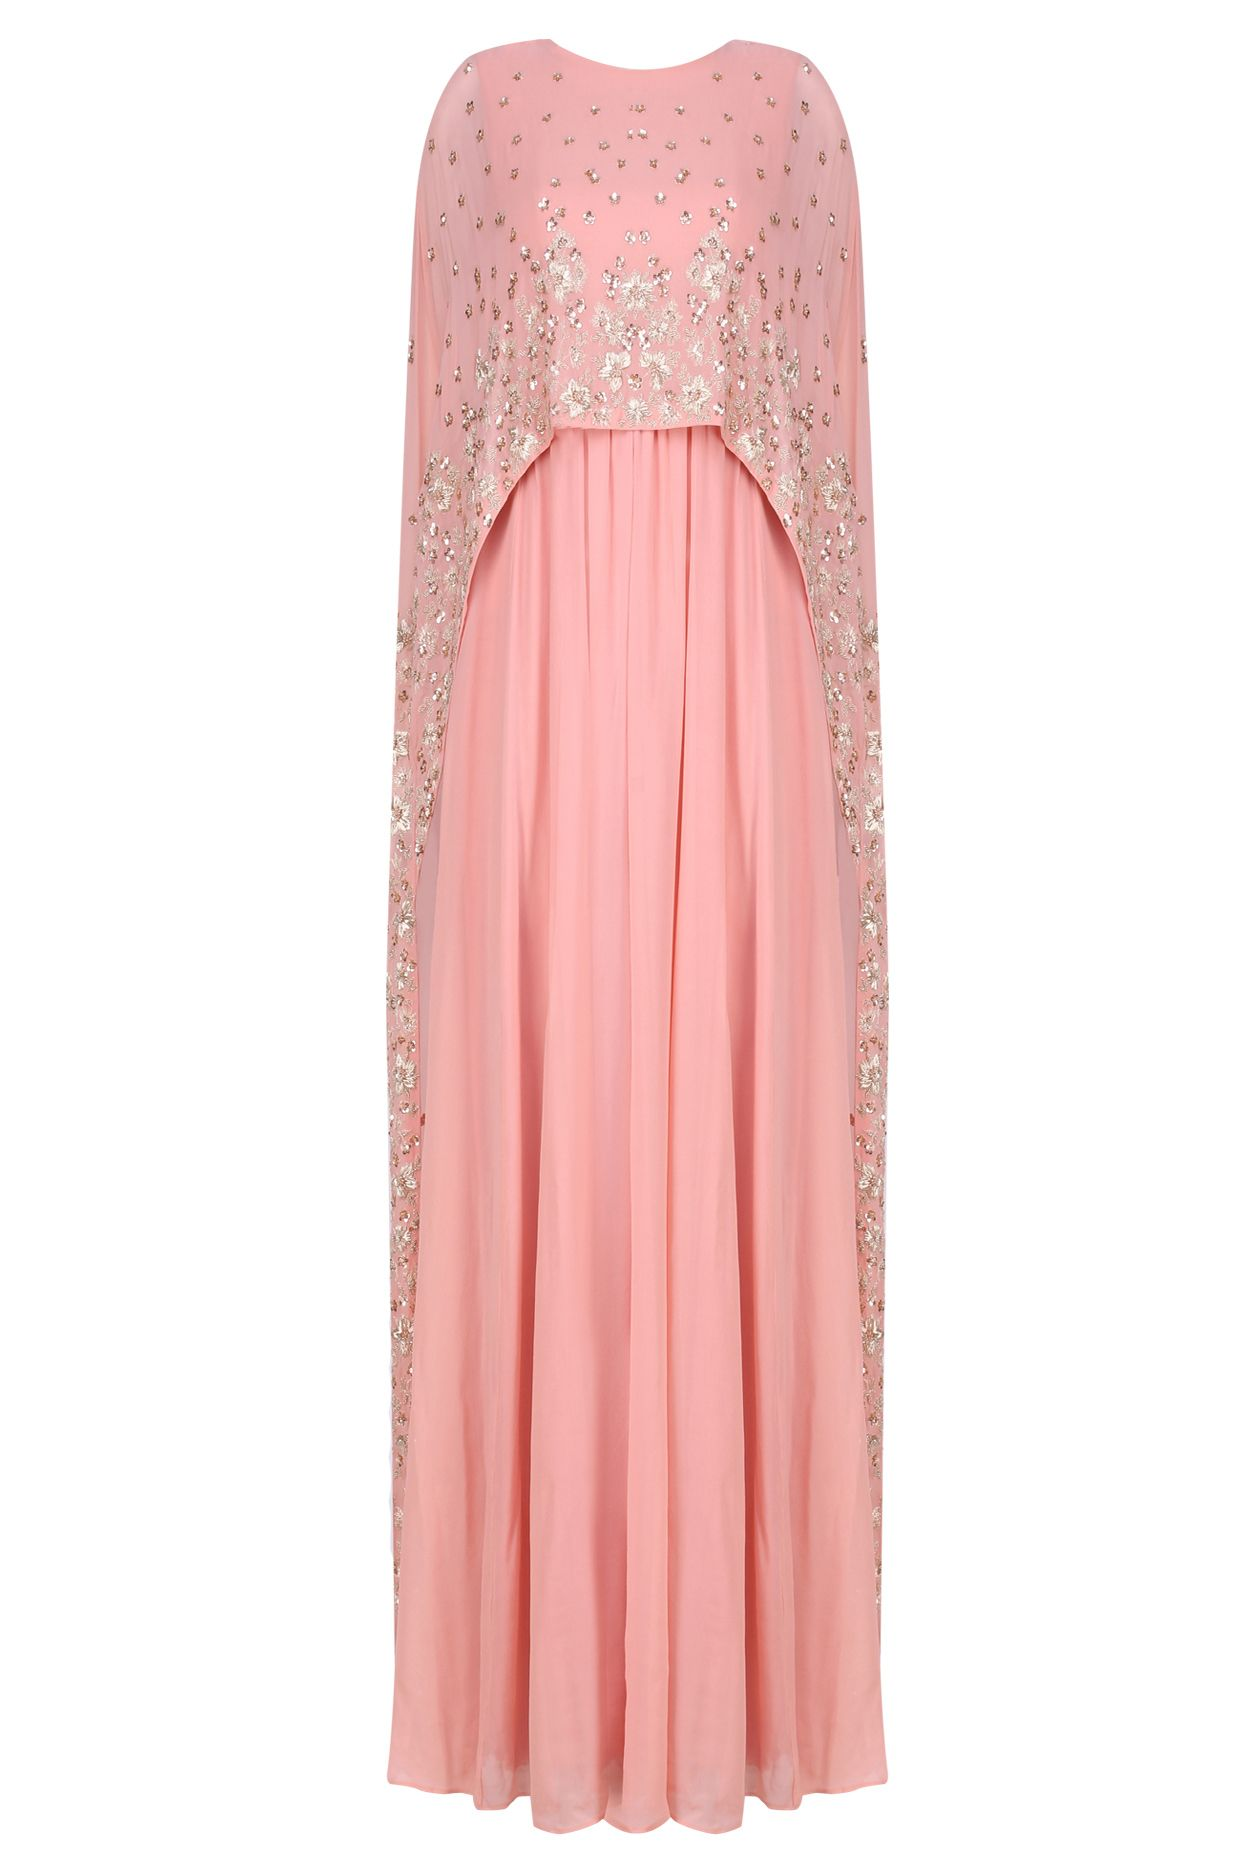 Peach floral embroidered cape gown available only at Pernia\'s Pop Up ...